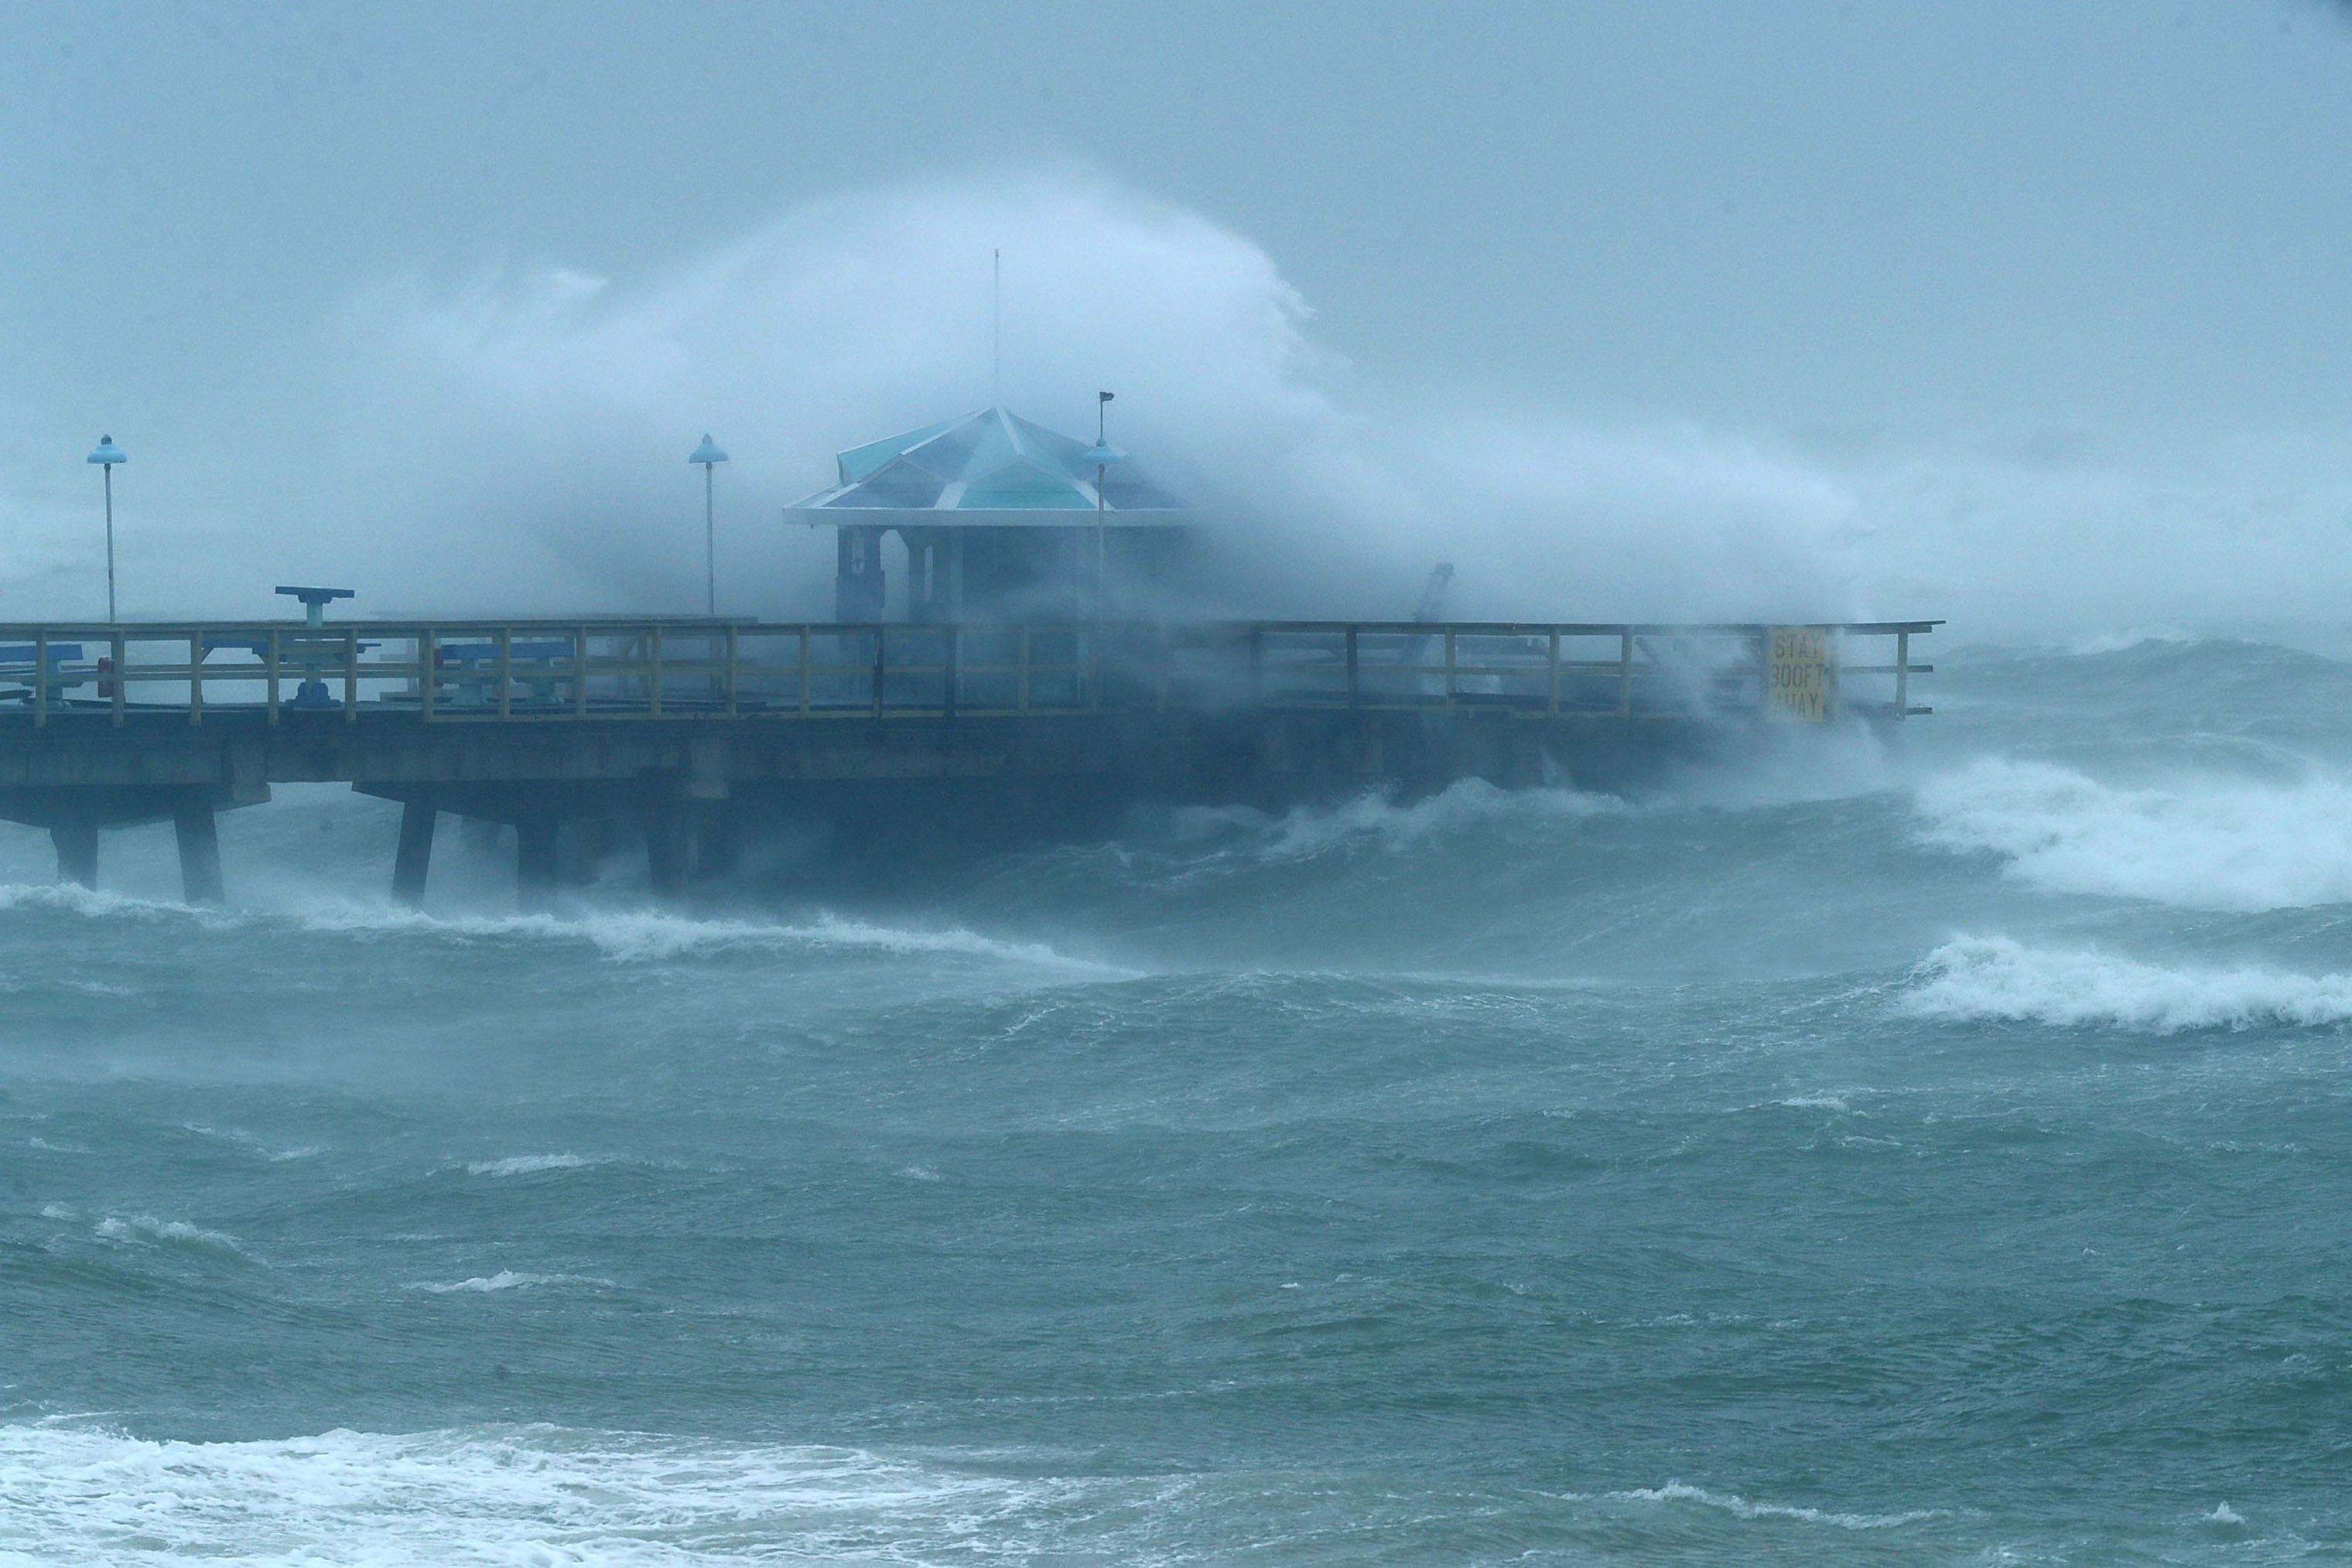 Large waves produced by Hurricane Irma crash into the end of Anglins Fishing Pier in Fort Lauderdale, Fla. on Sept. 10, 2017